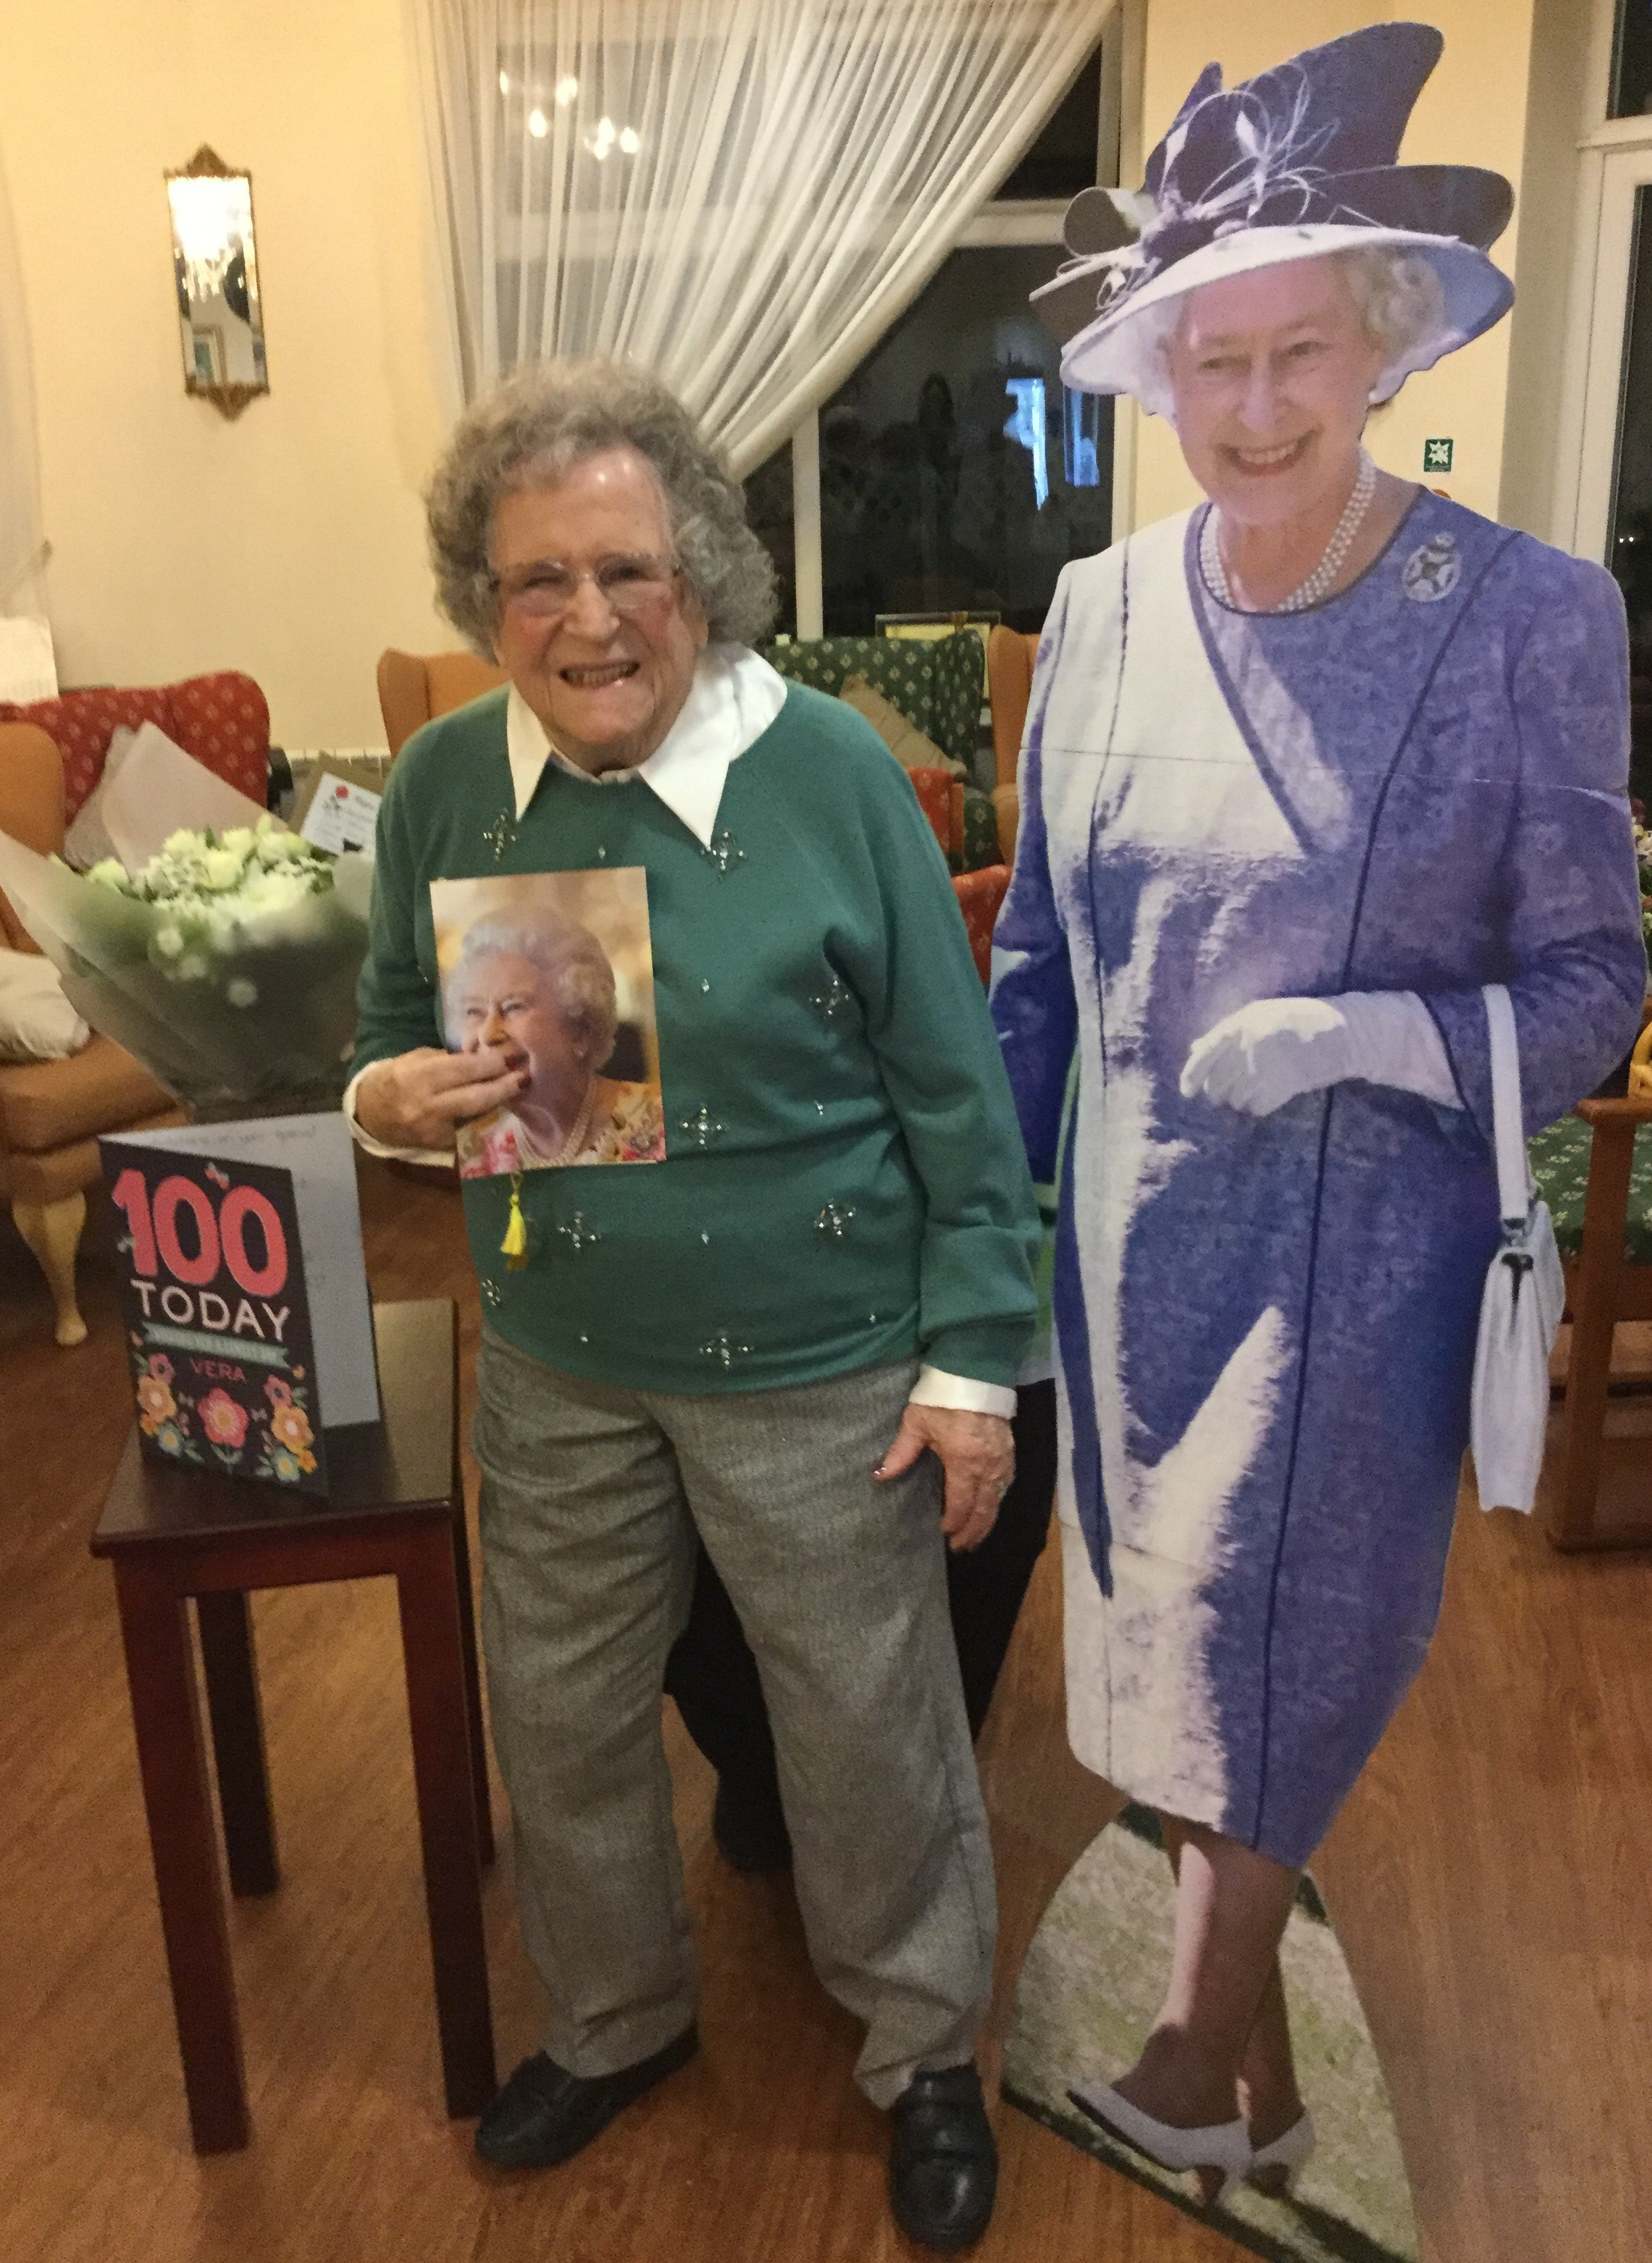 Vera Connelly celebrates turning 100 with her birthday card from the Queen and a life size cut out of Her Majesty